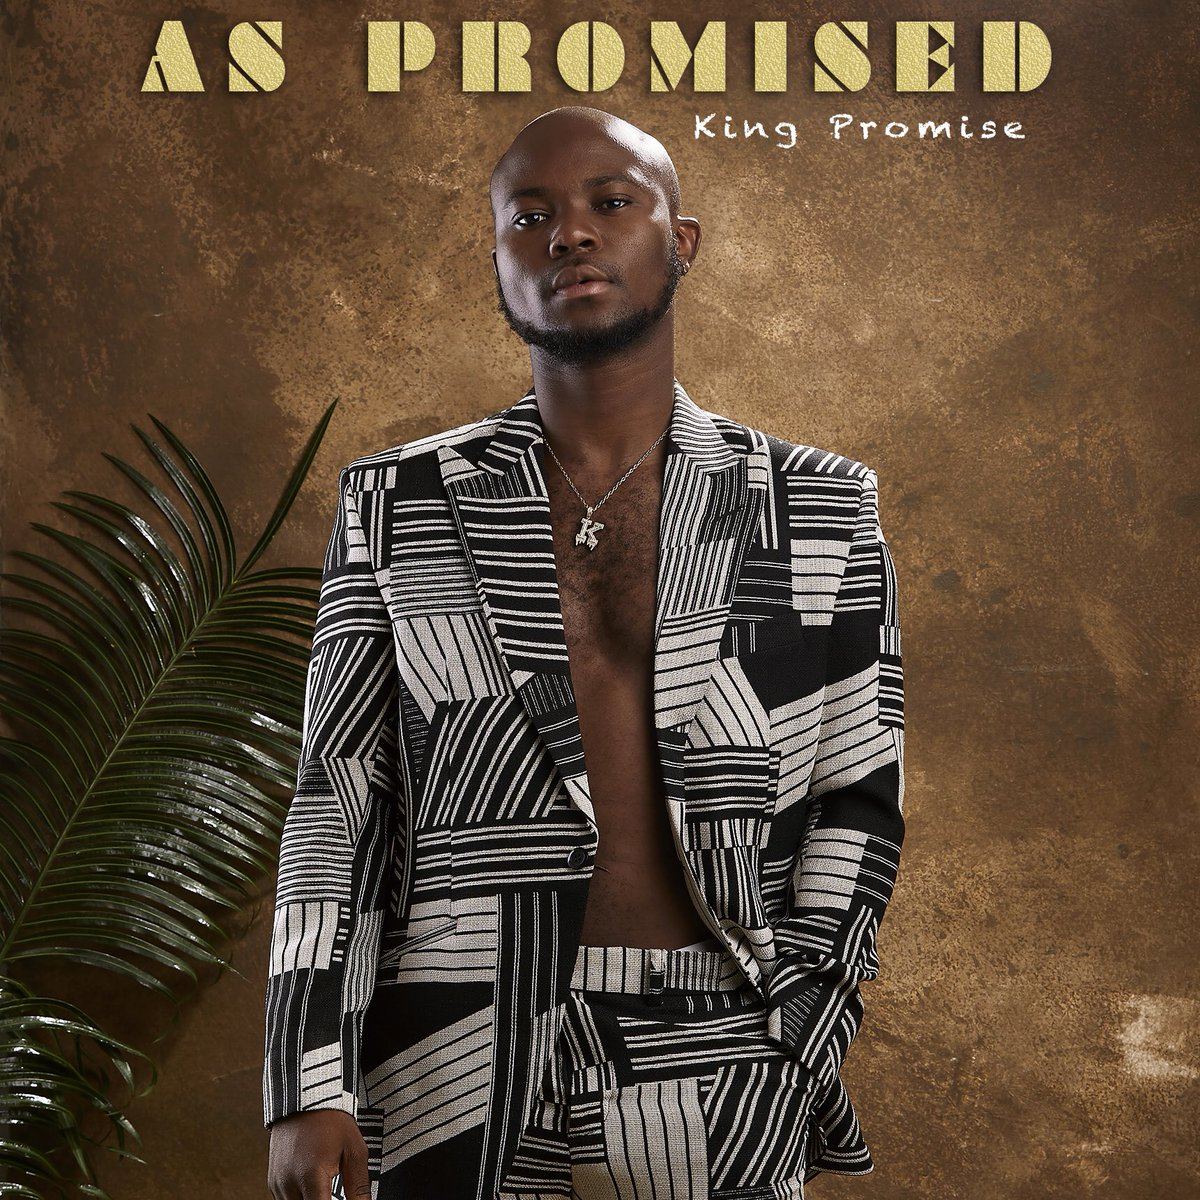 King Promise set to released an Album on 5th July